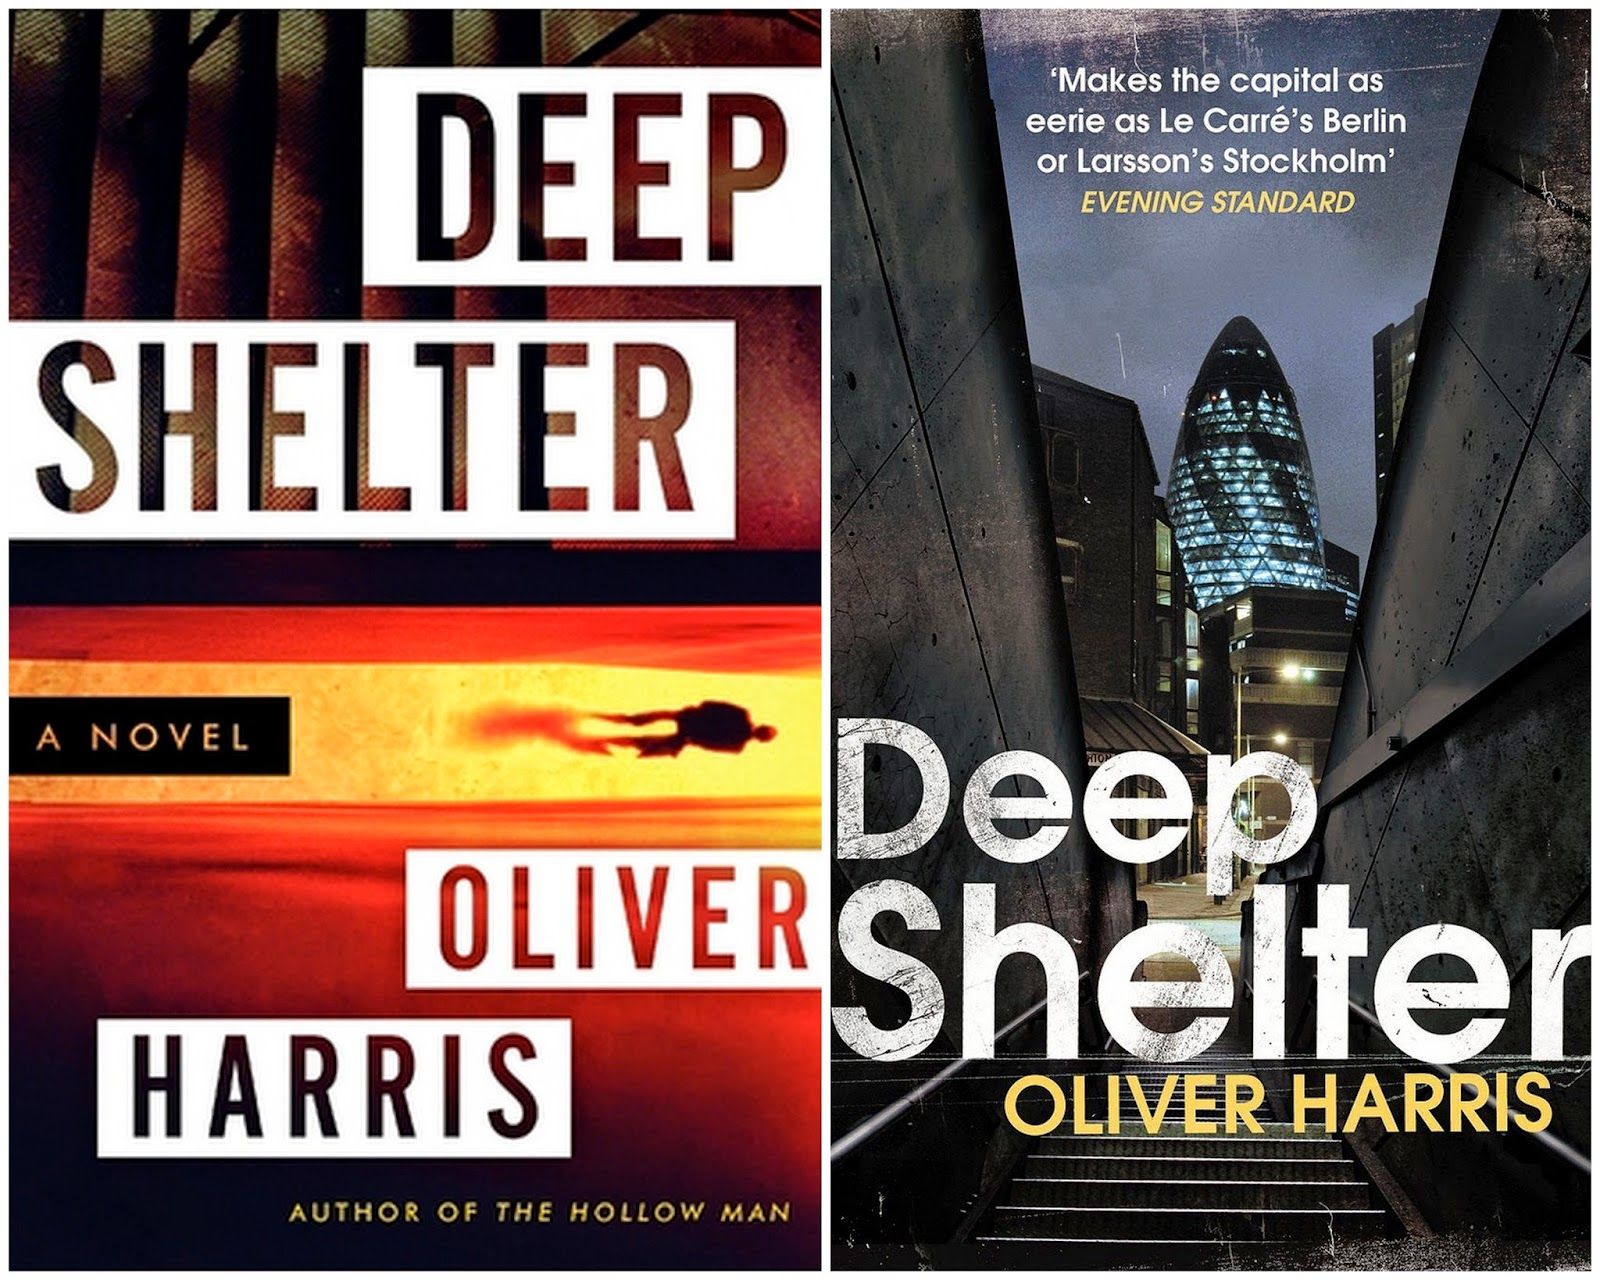 The American Cover Of Deep Shelter, At Left, Has The Typical Bold Look Of A  Thriller But, What's Happening? Are Those Steps At The Top?